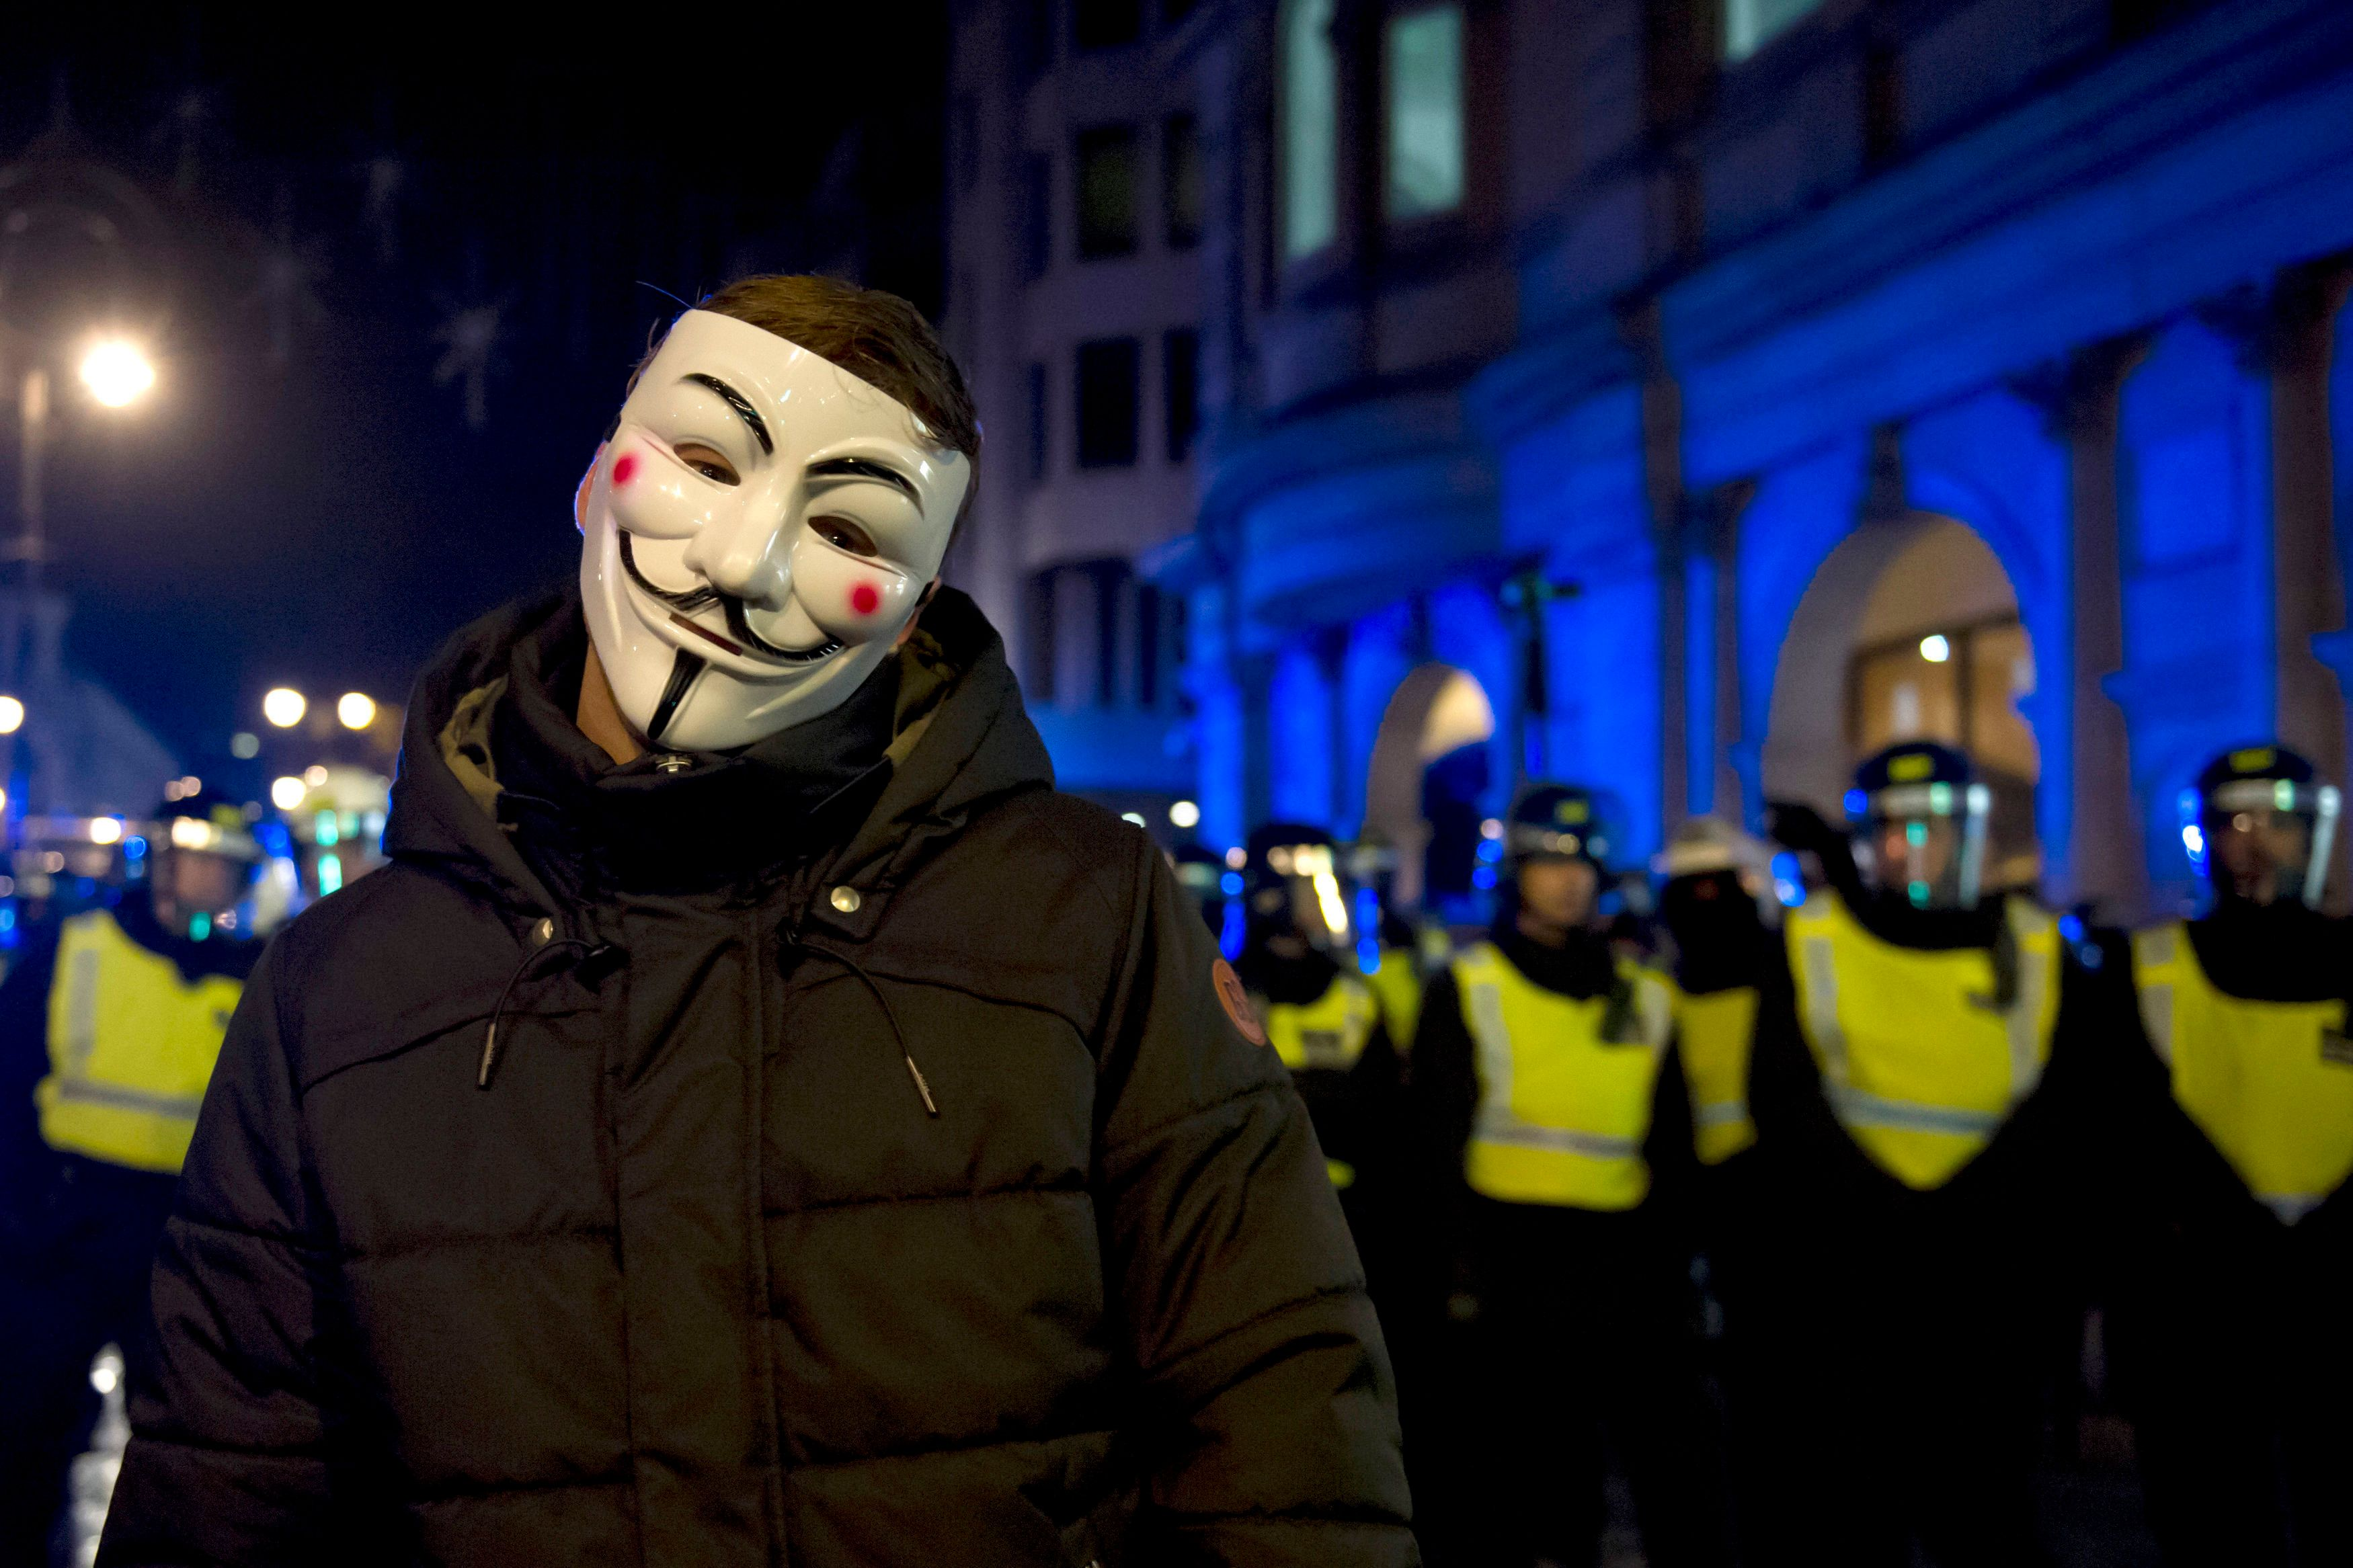 <strong>Protestors demonstrate on The Strand, London, during the Million Mask March bonfire night protest organised by activist group Anonymous</strong>